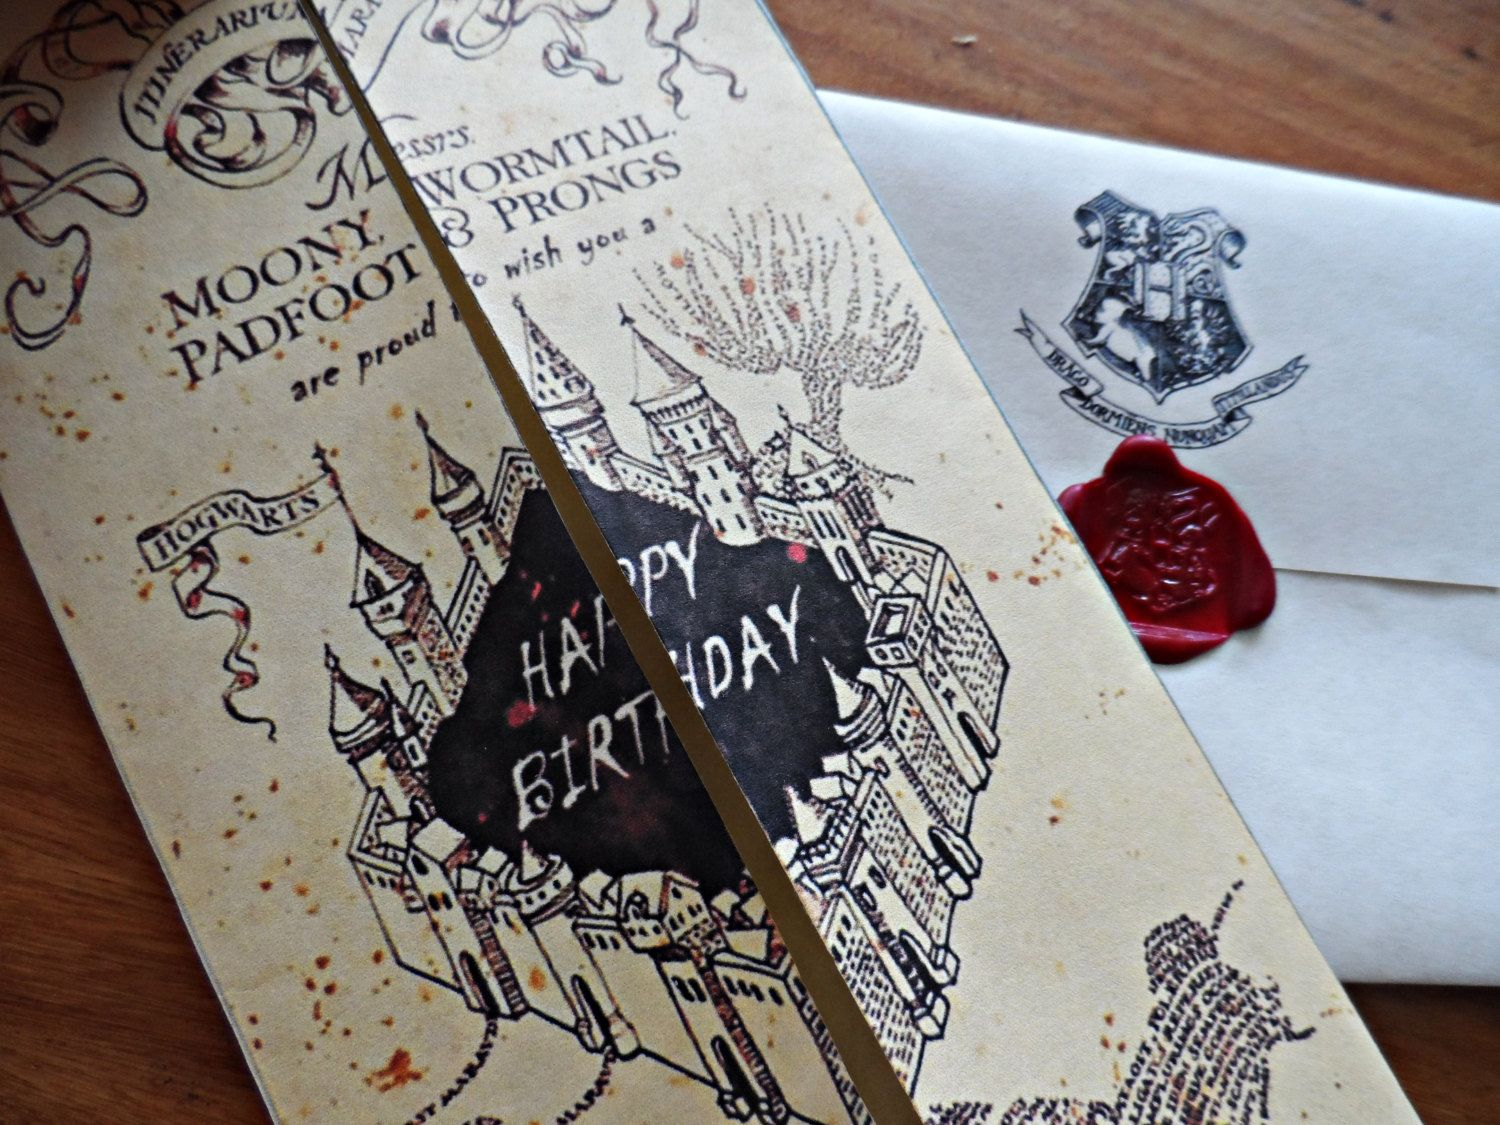 Harry Potter Themed Birthday Cards DIY Pinterest – Harry Potter Birthday Card